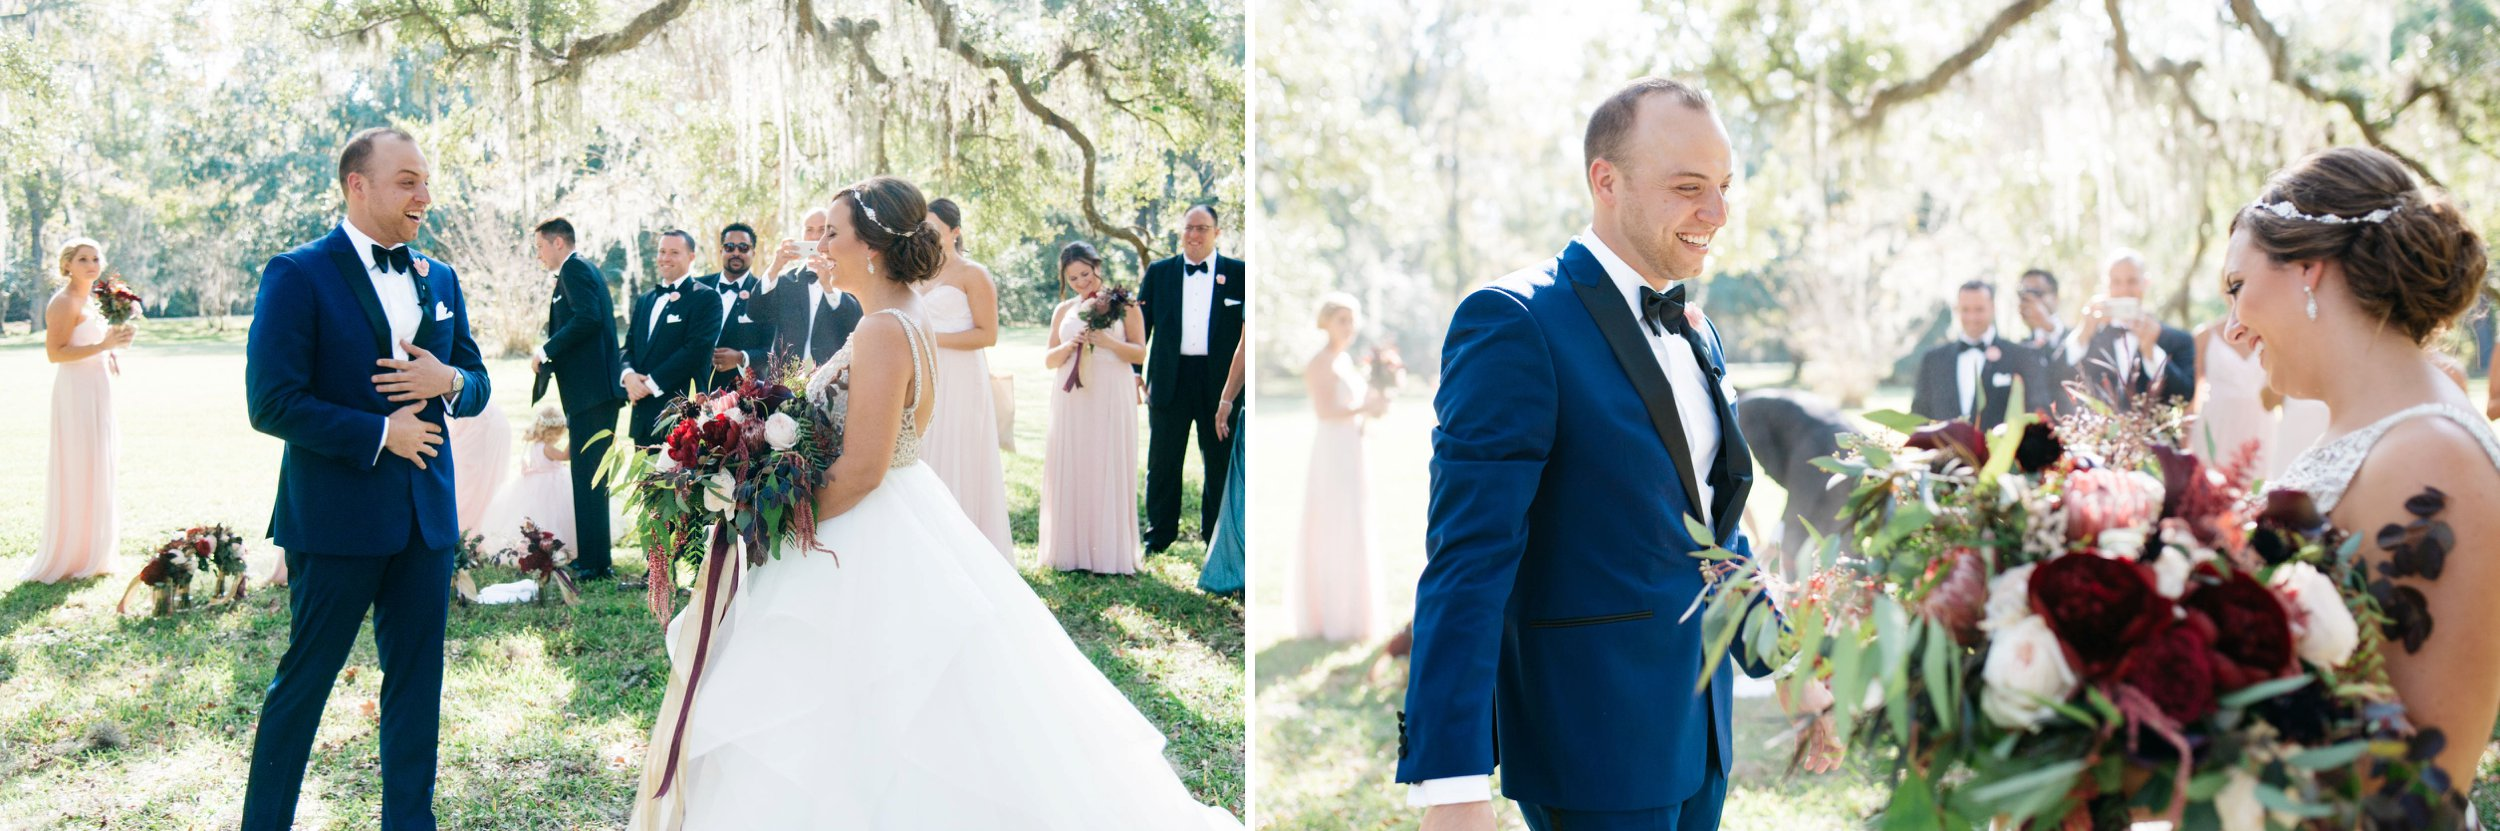 Charleston-wedding-photographer_0114.jpg